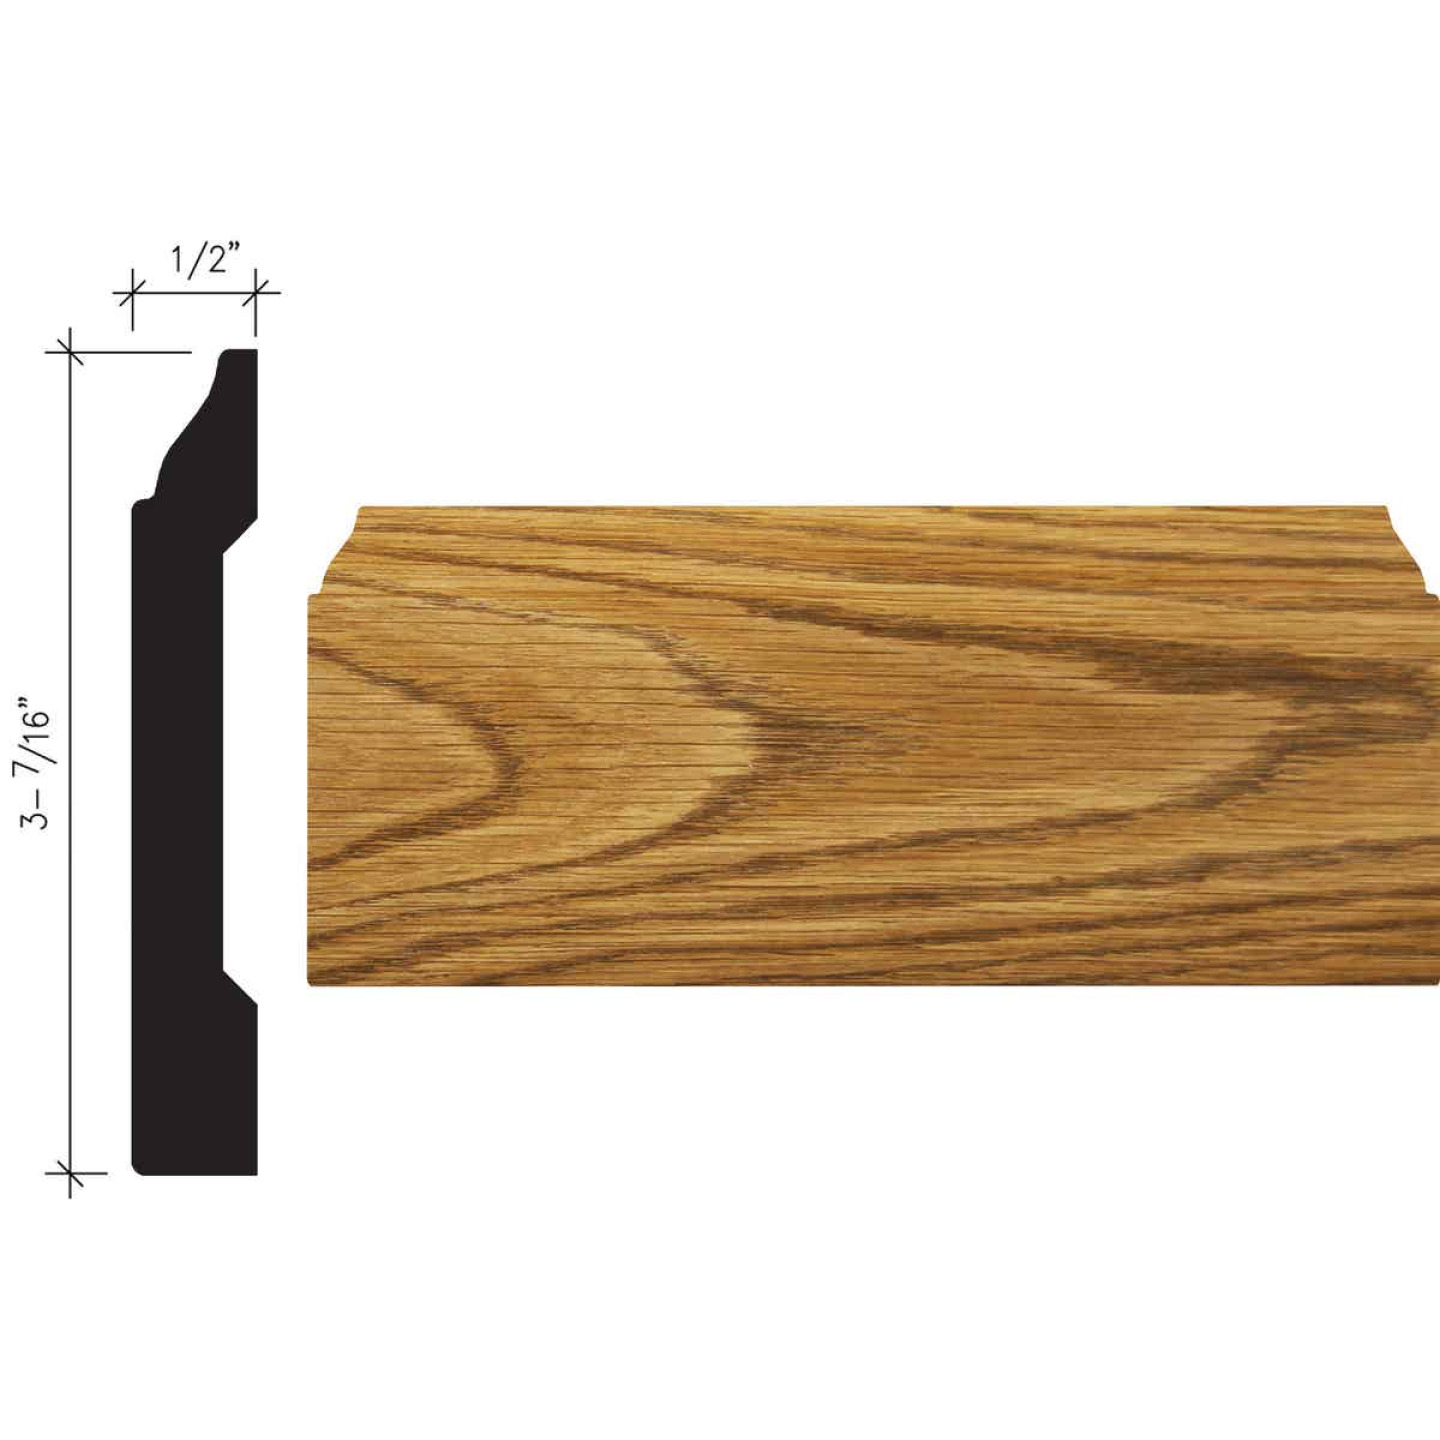 Inteplast Building Products 1/2 In. W. x 3-7/16 In. H. x 8 Ft. L. Ultra Oak Polystyrene Colonial Base Molding Image 1